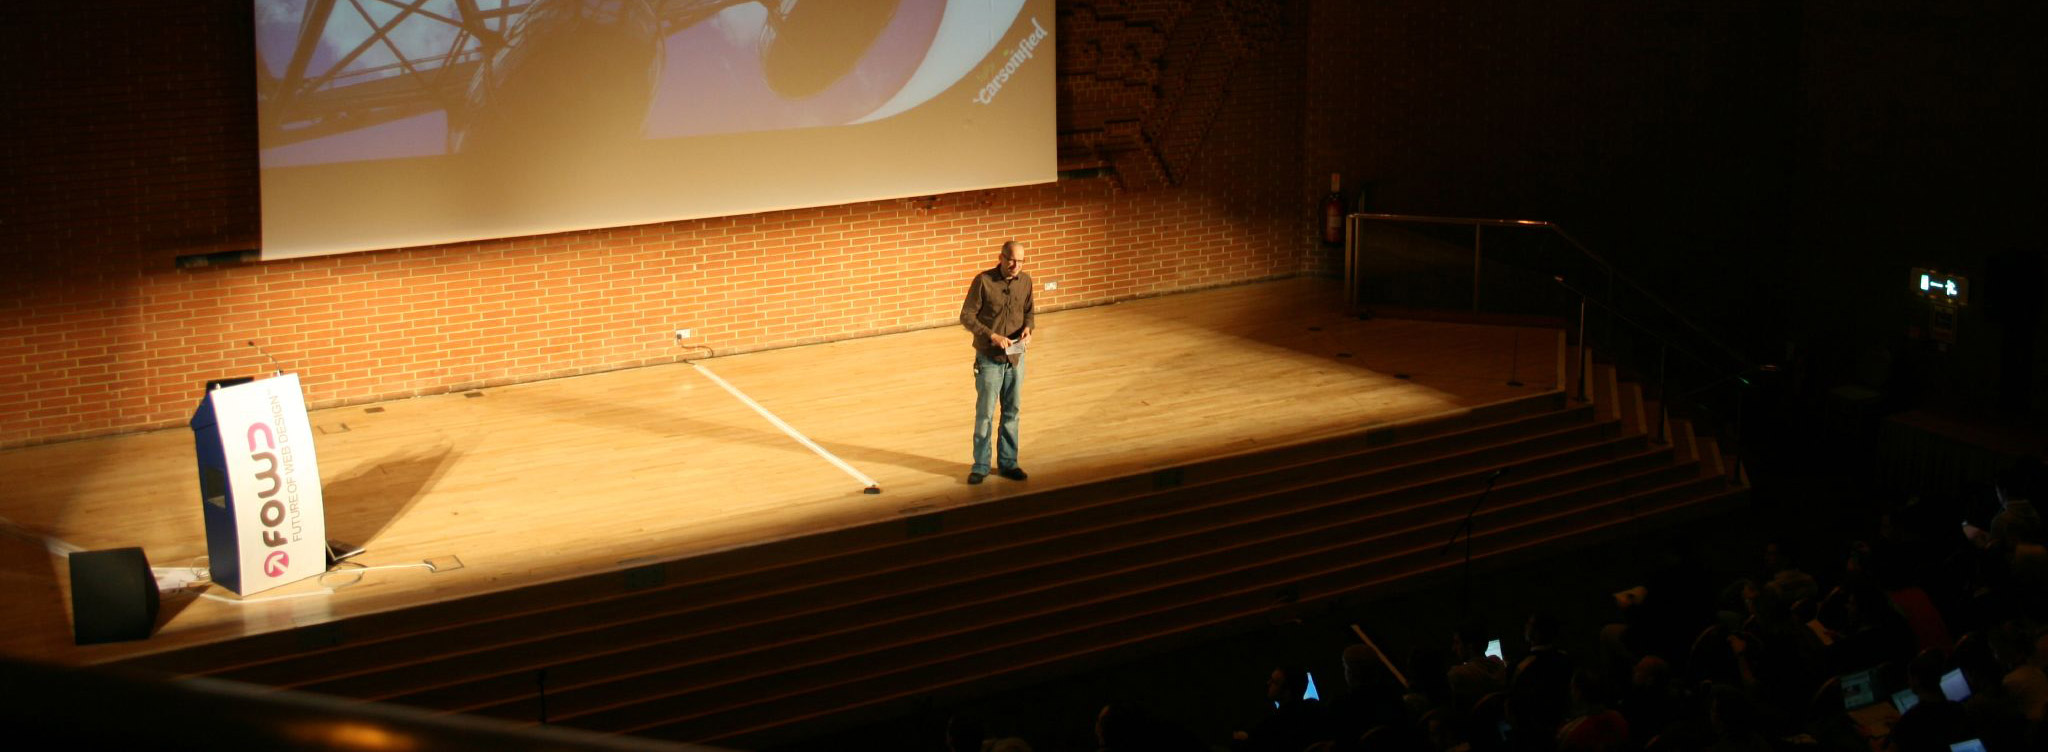 UX consultant Paul Boag on stage.